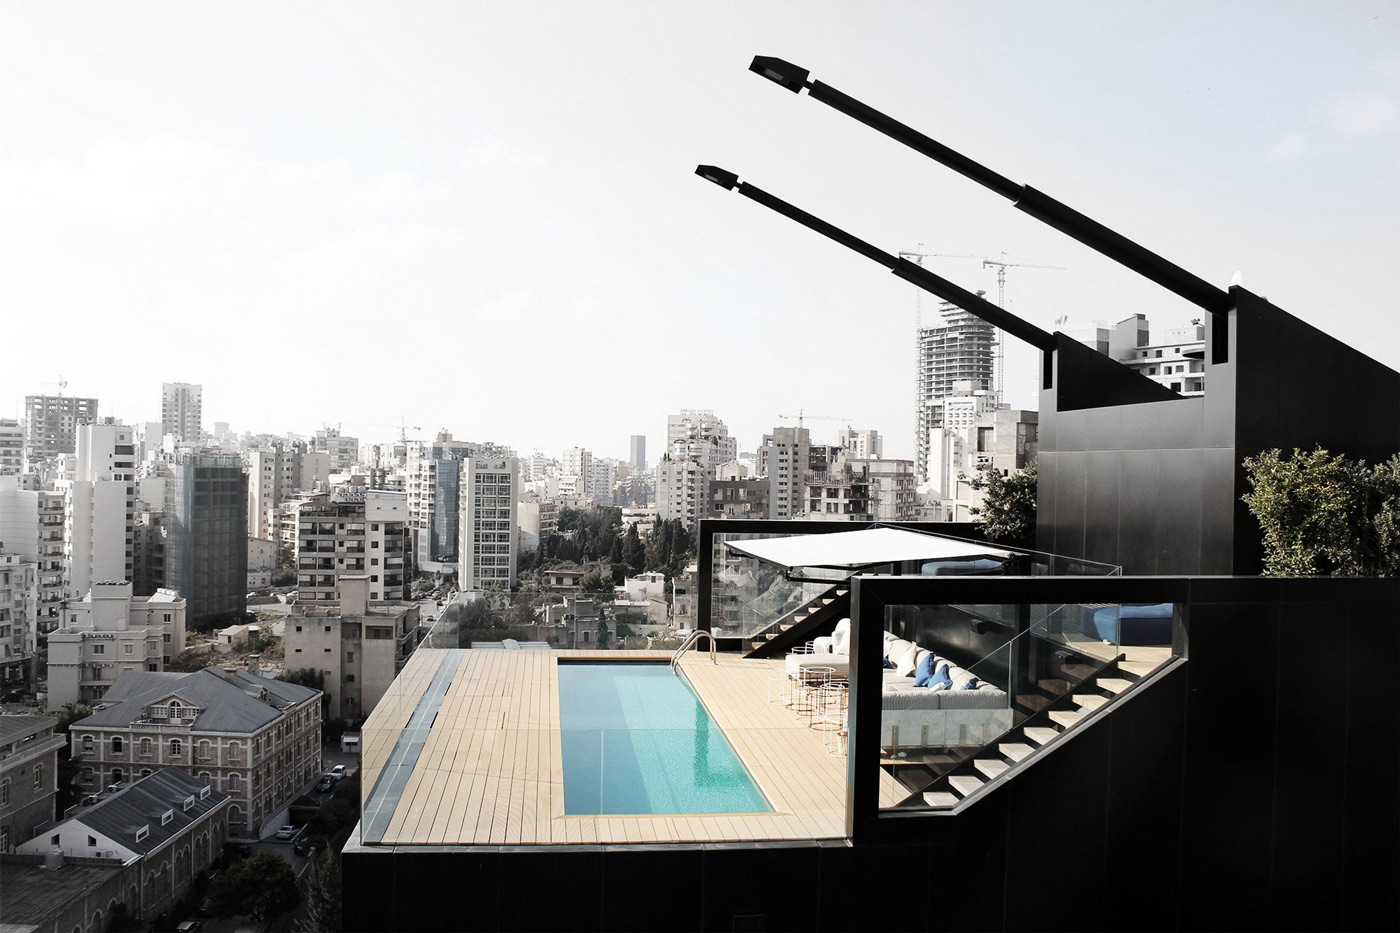 Rooftop Pool, Penthouse Apartment in Beirut, Lebanon